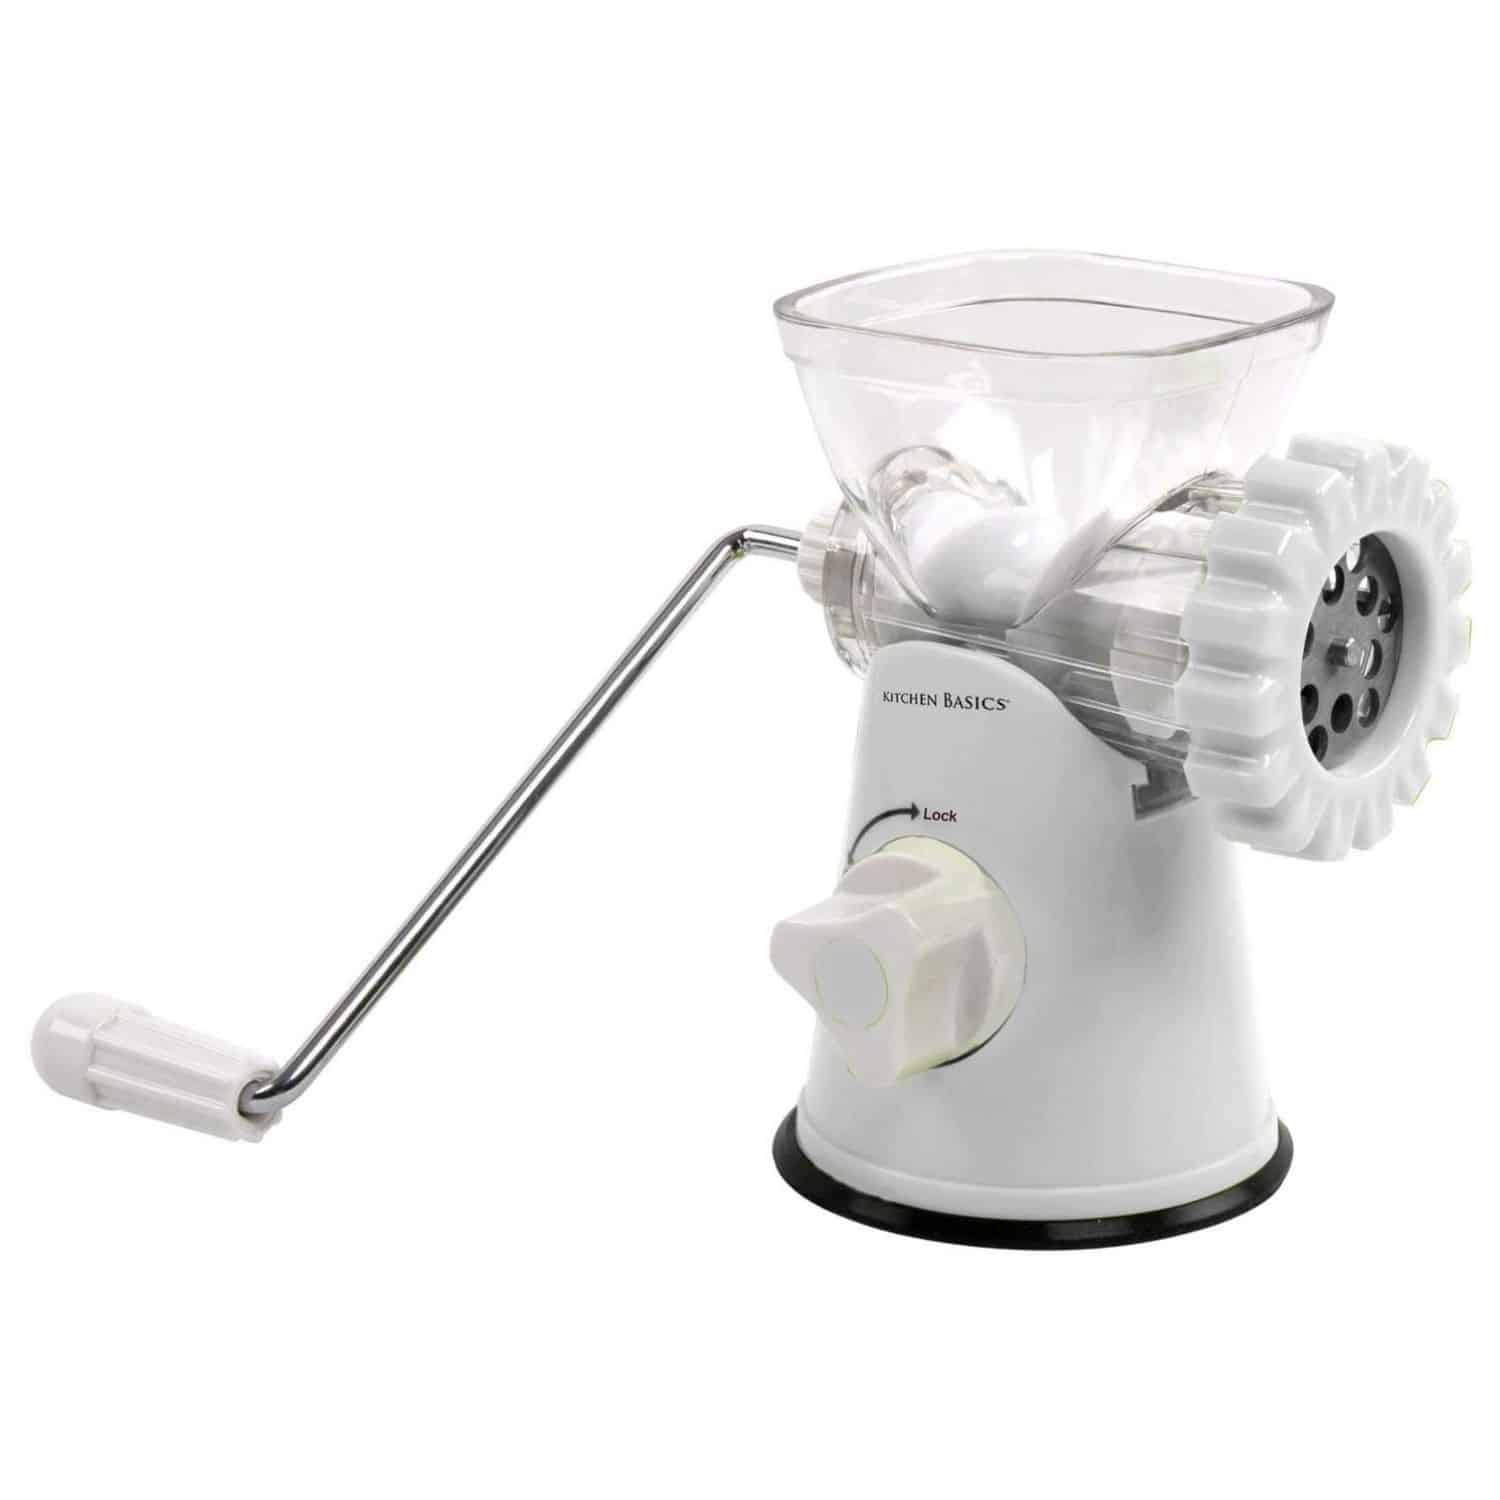 Kitchen Basics 3 N 1 Manual Meat and Vegetable Grinder Mincer